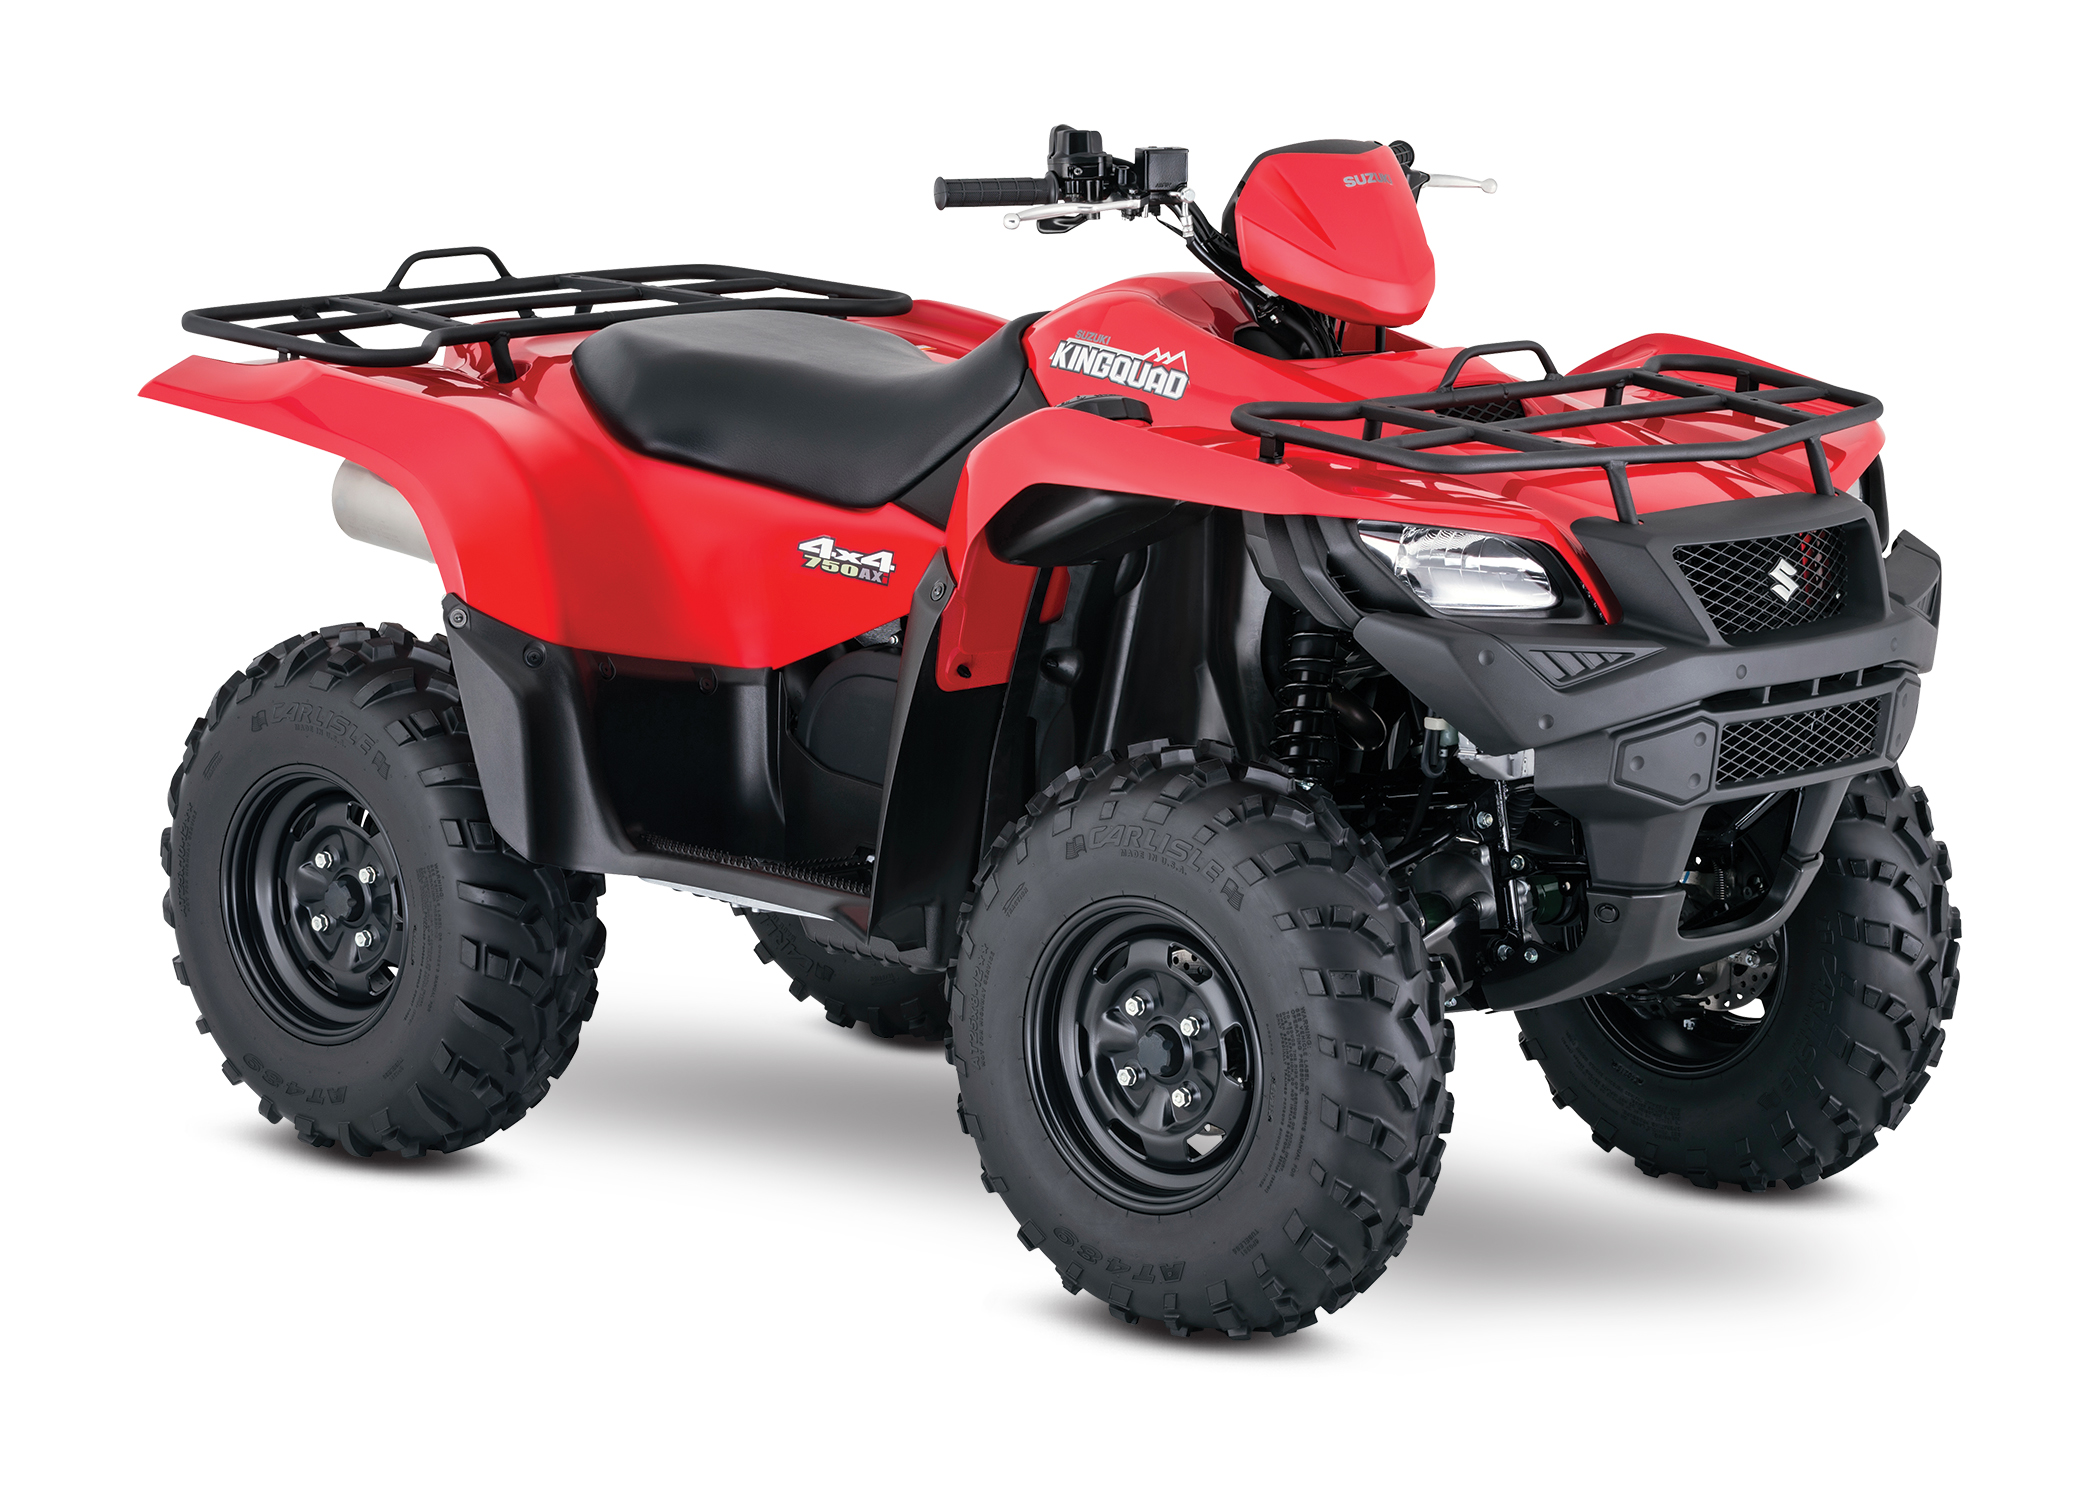 Suzuki kingquad photo - 7